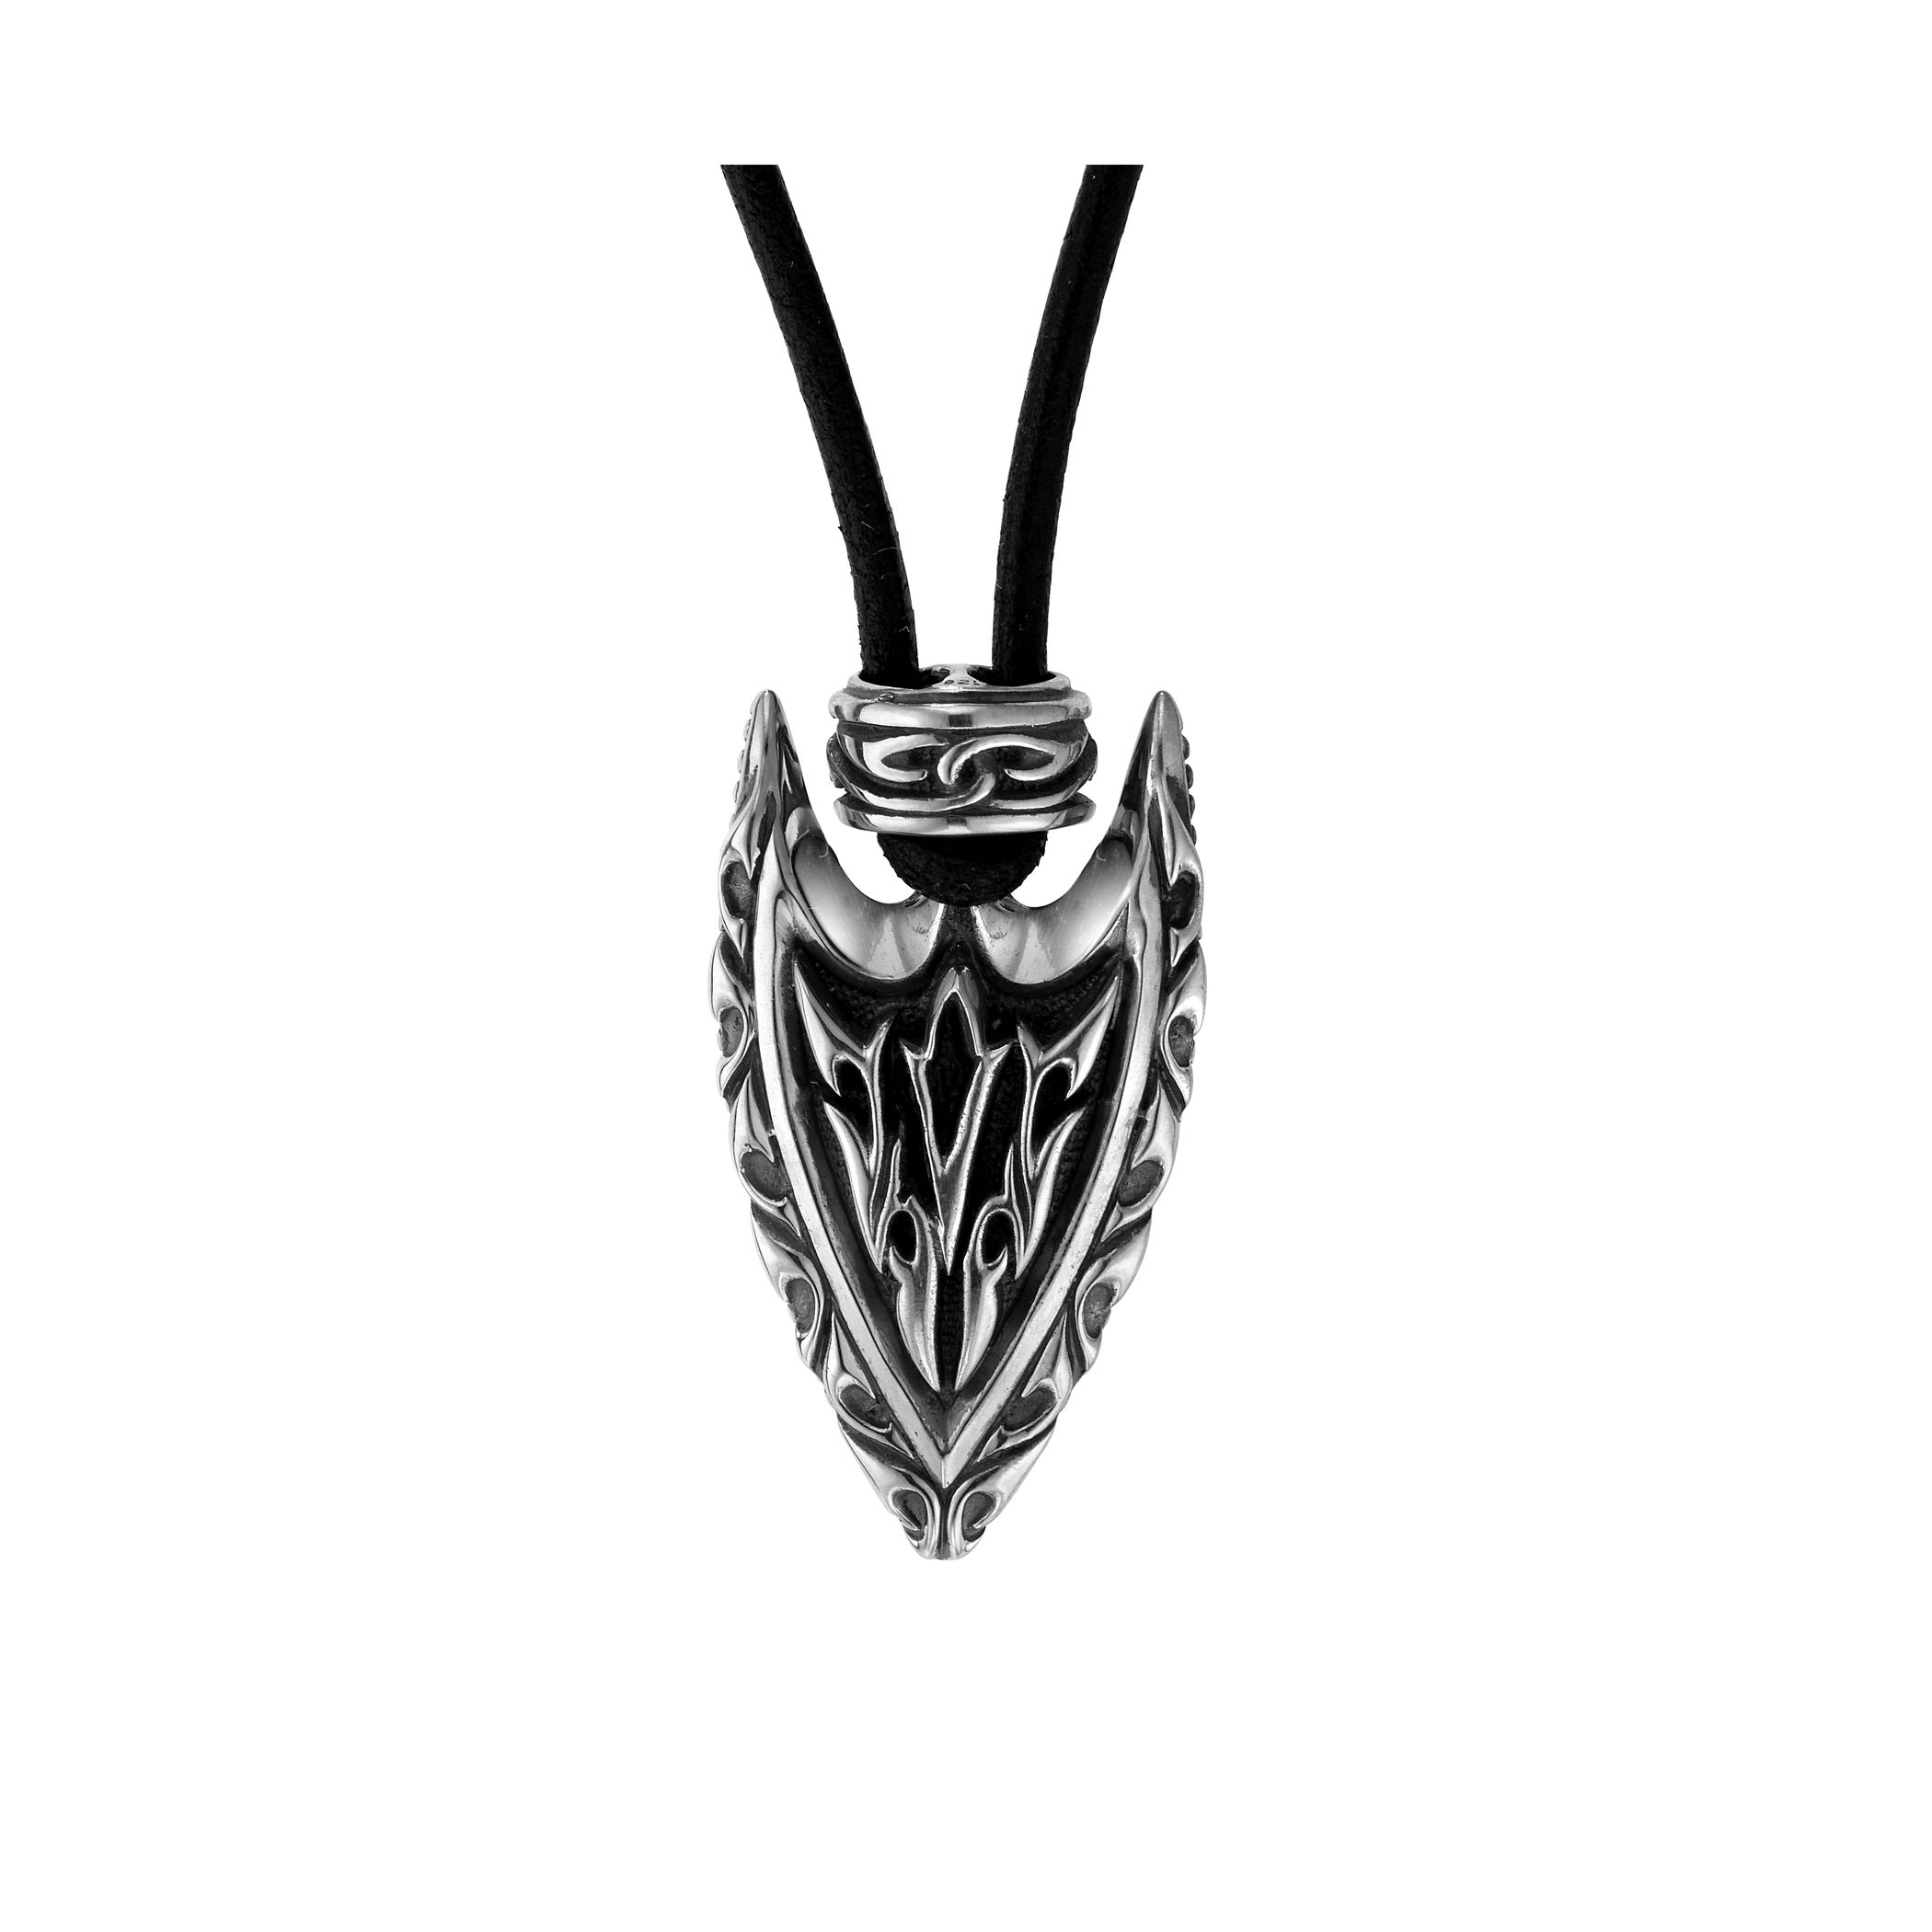 Stand Out Designs Jewelry : Day feature a stand out embellished men s arrowhead